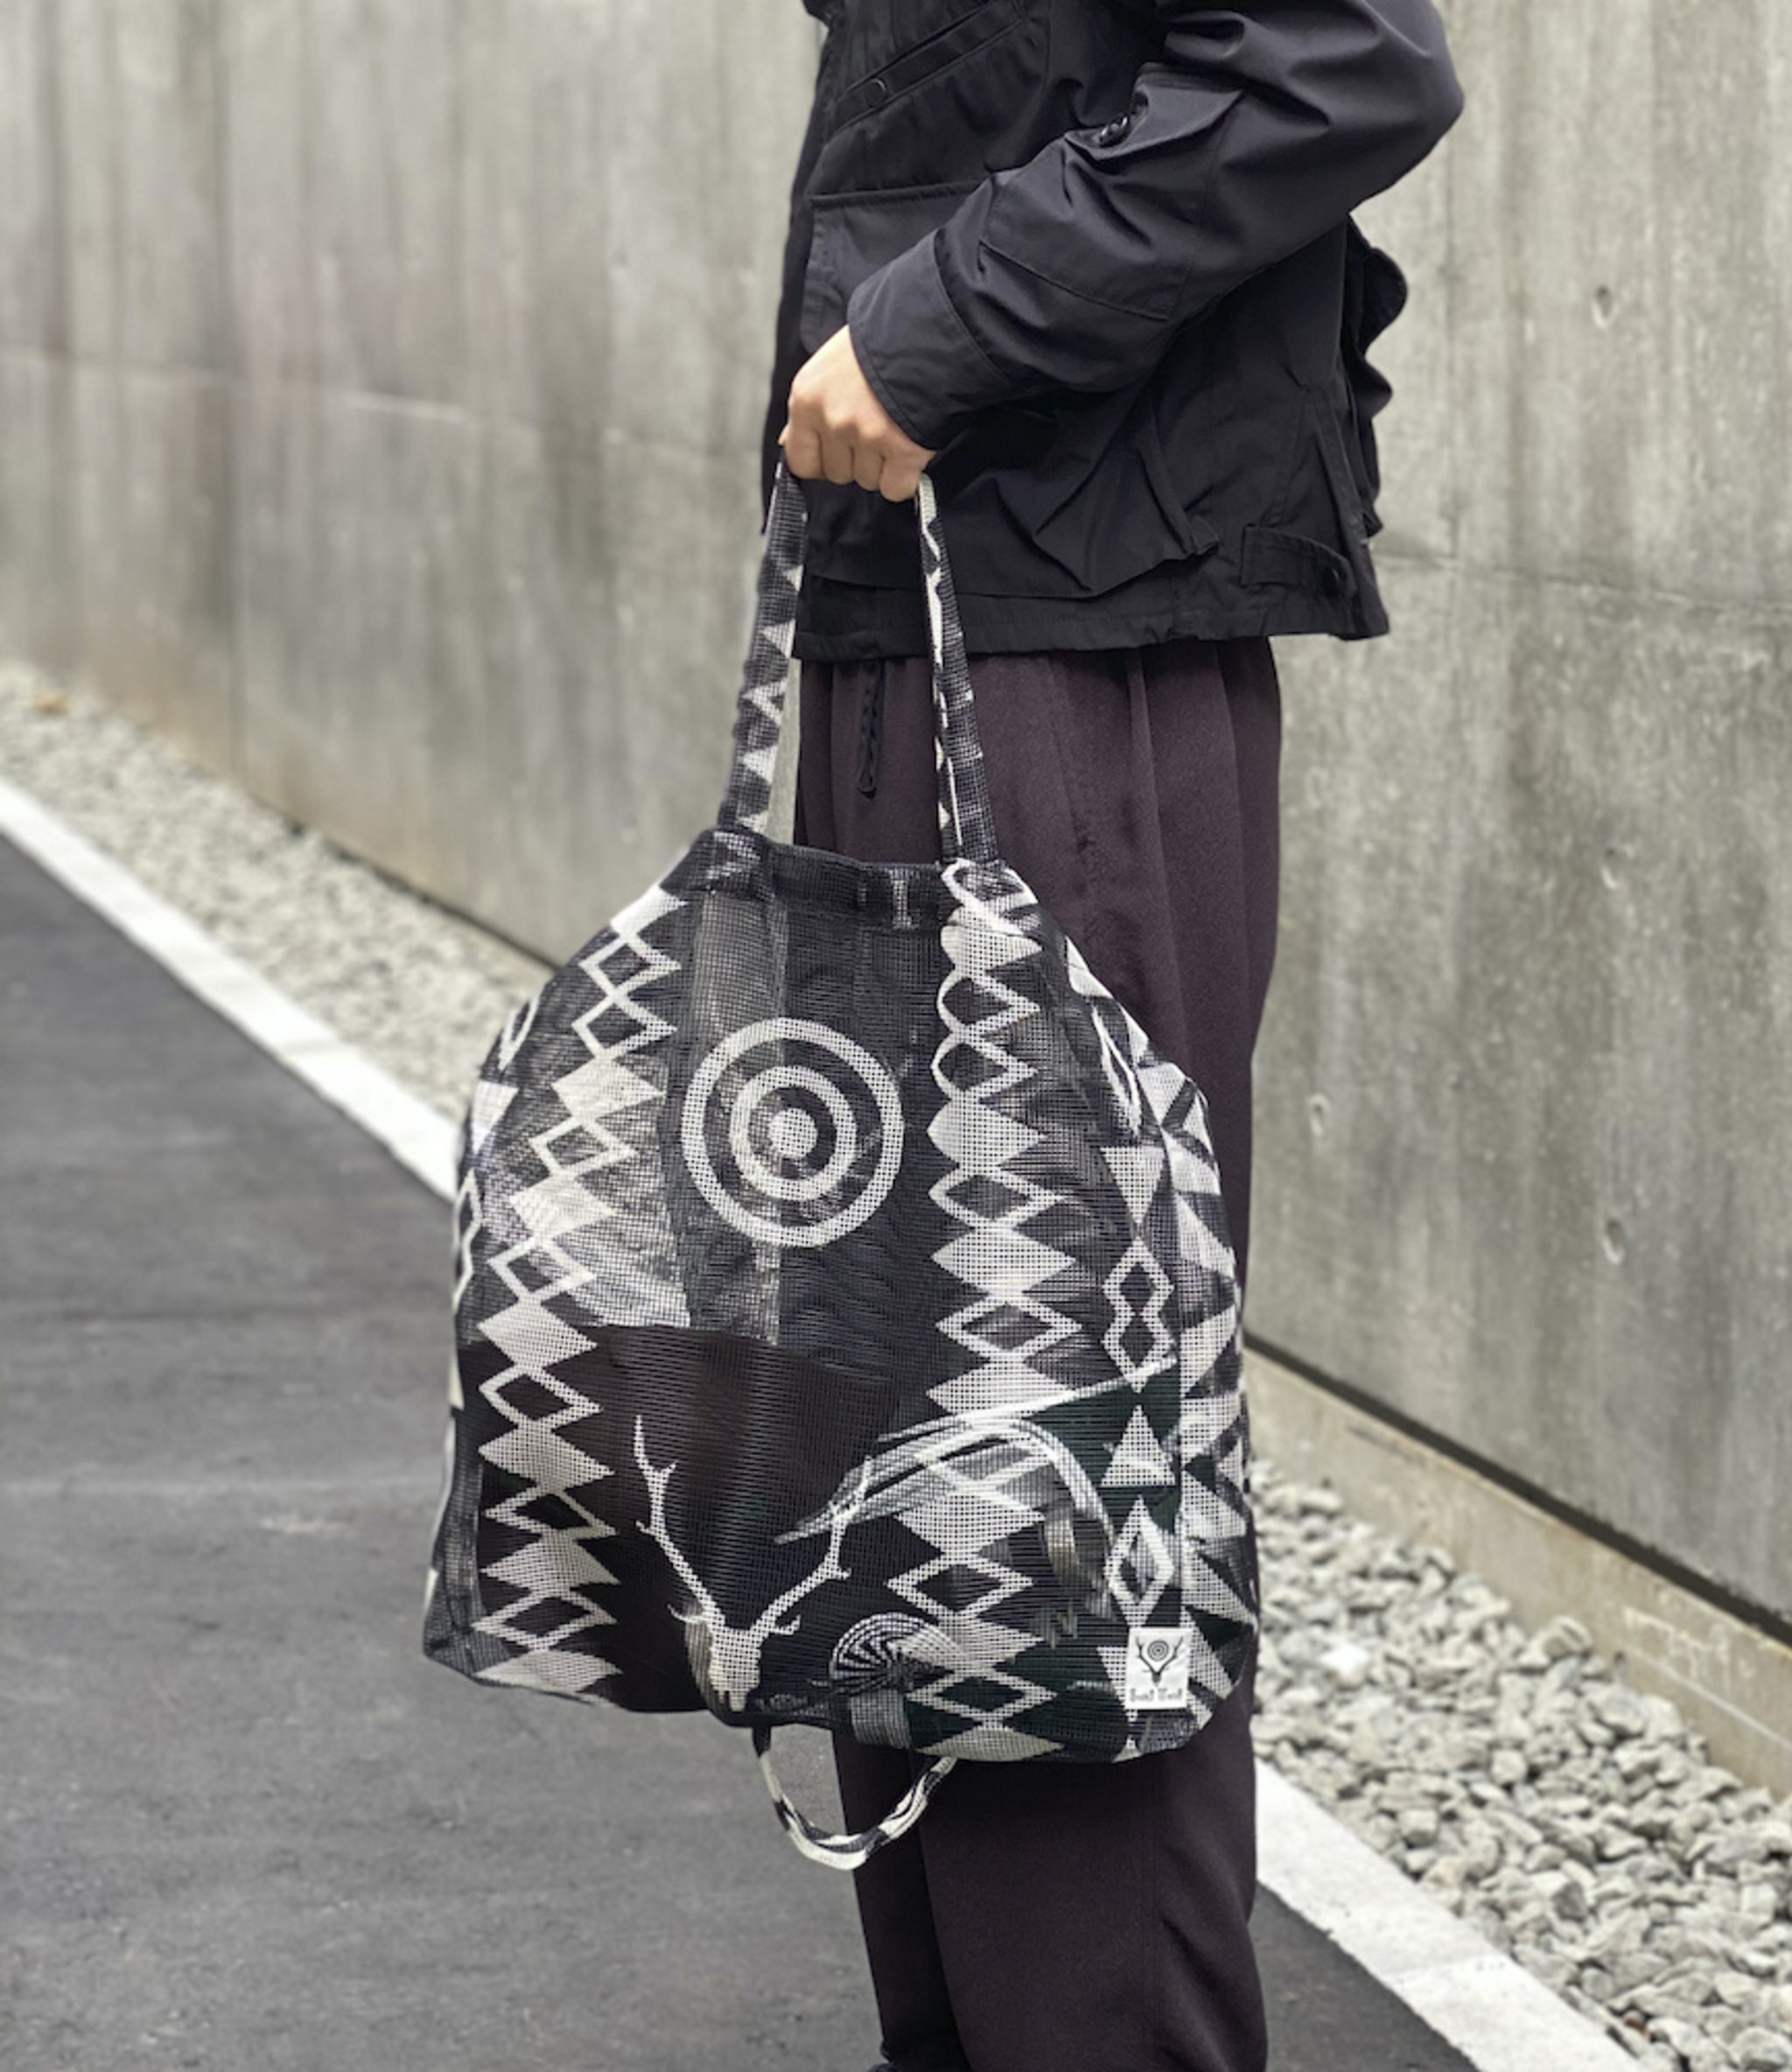 South2 West8 Grocery Bag - Poly Heavyweight Mesh / Print - Skull&Target